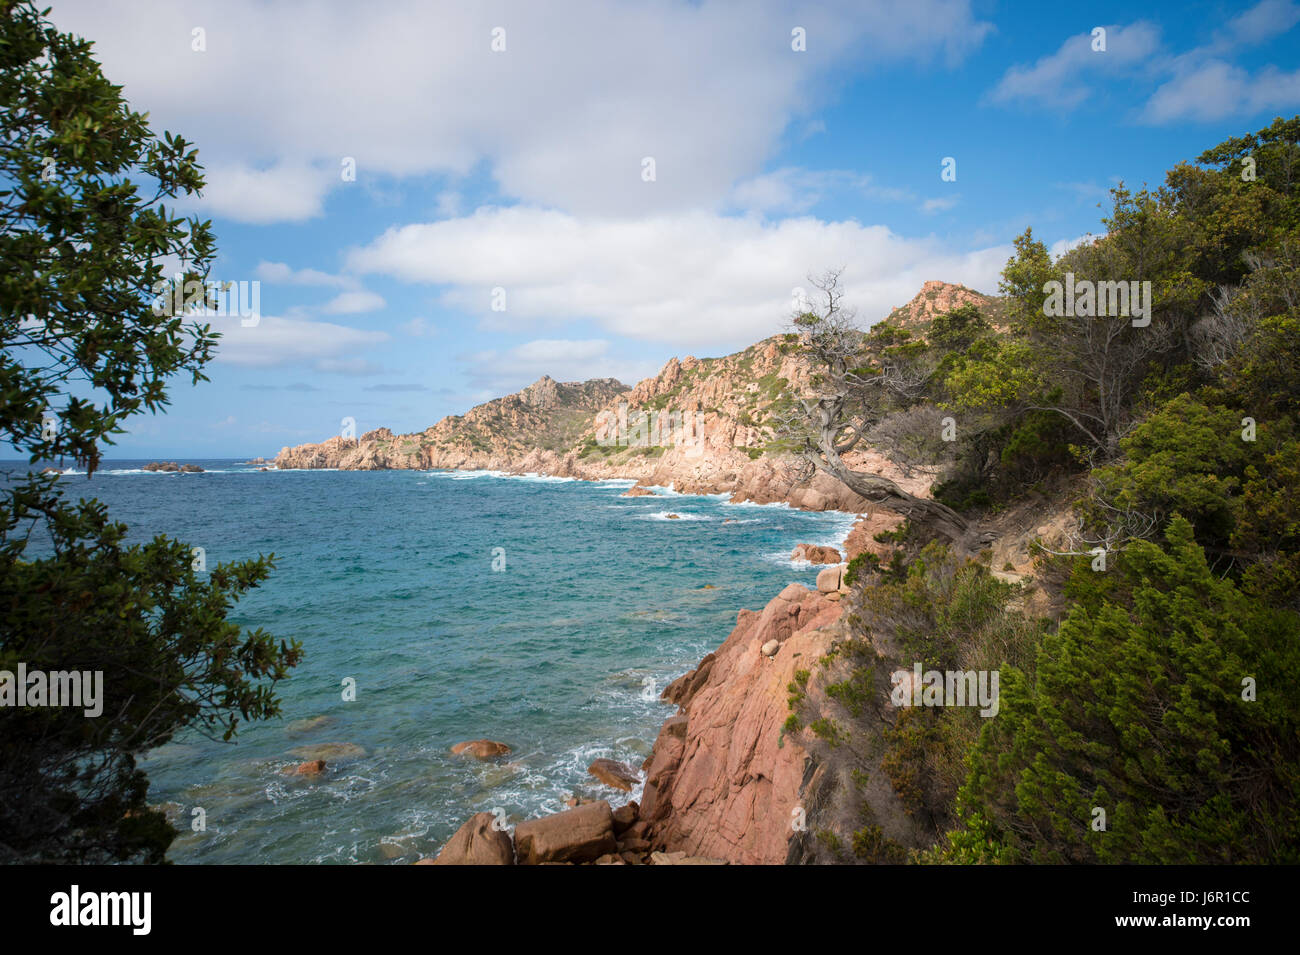 Amazing seascape of a turquoise sea in Italy. Beautiful wild beach of the Emerald coast in Sardinia. - Stock Image